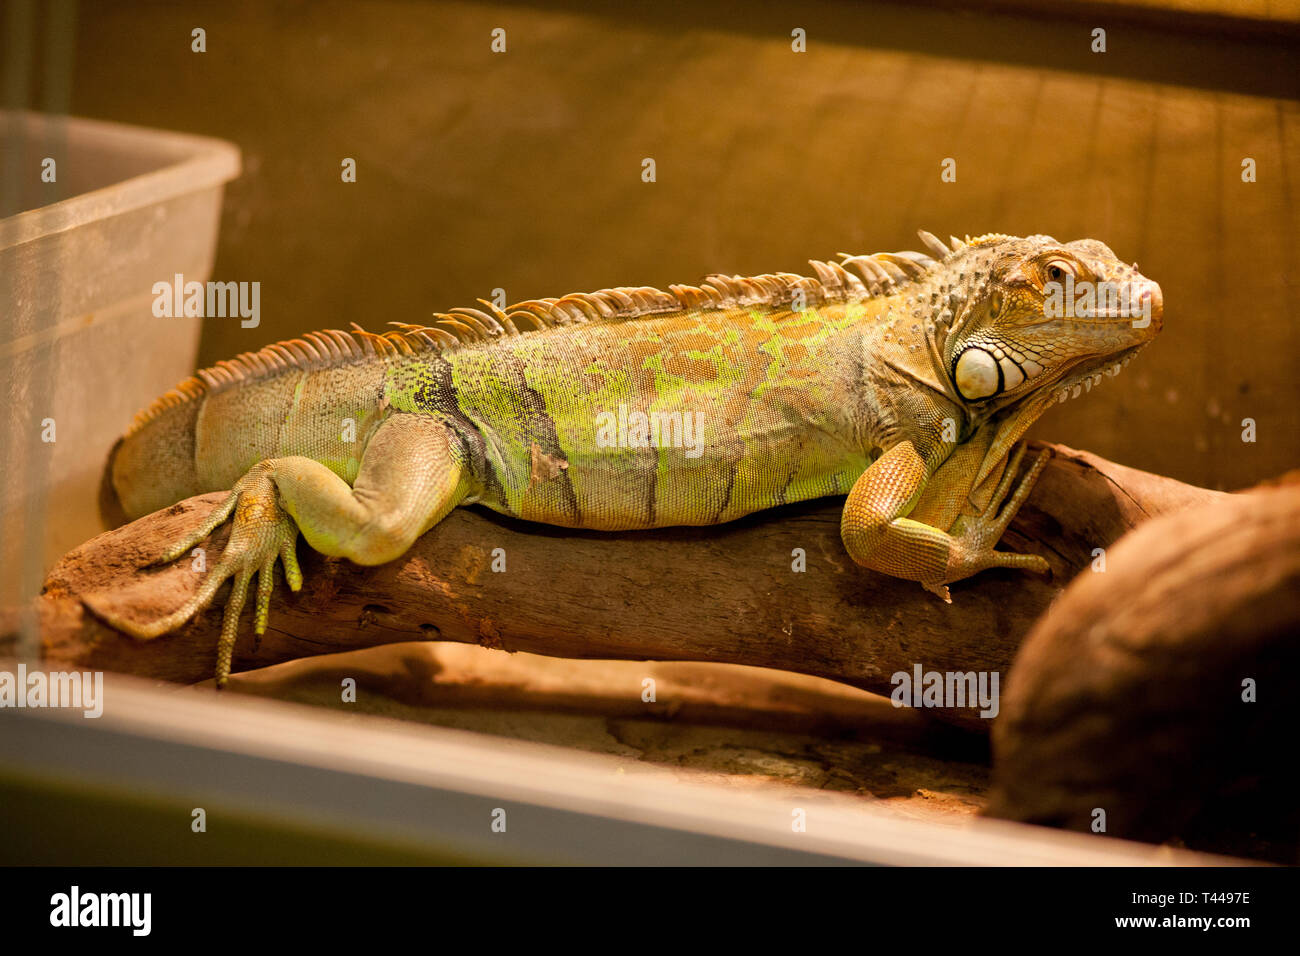 Green iguana, also known as American iguana, is a large, arboreal, lizard. Found in captivity as a pet due to its calm disposition and bright colors.  - Stock Image